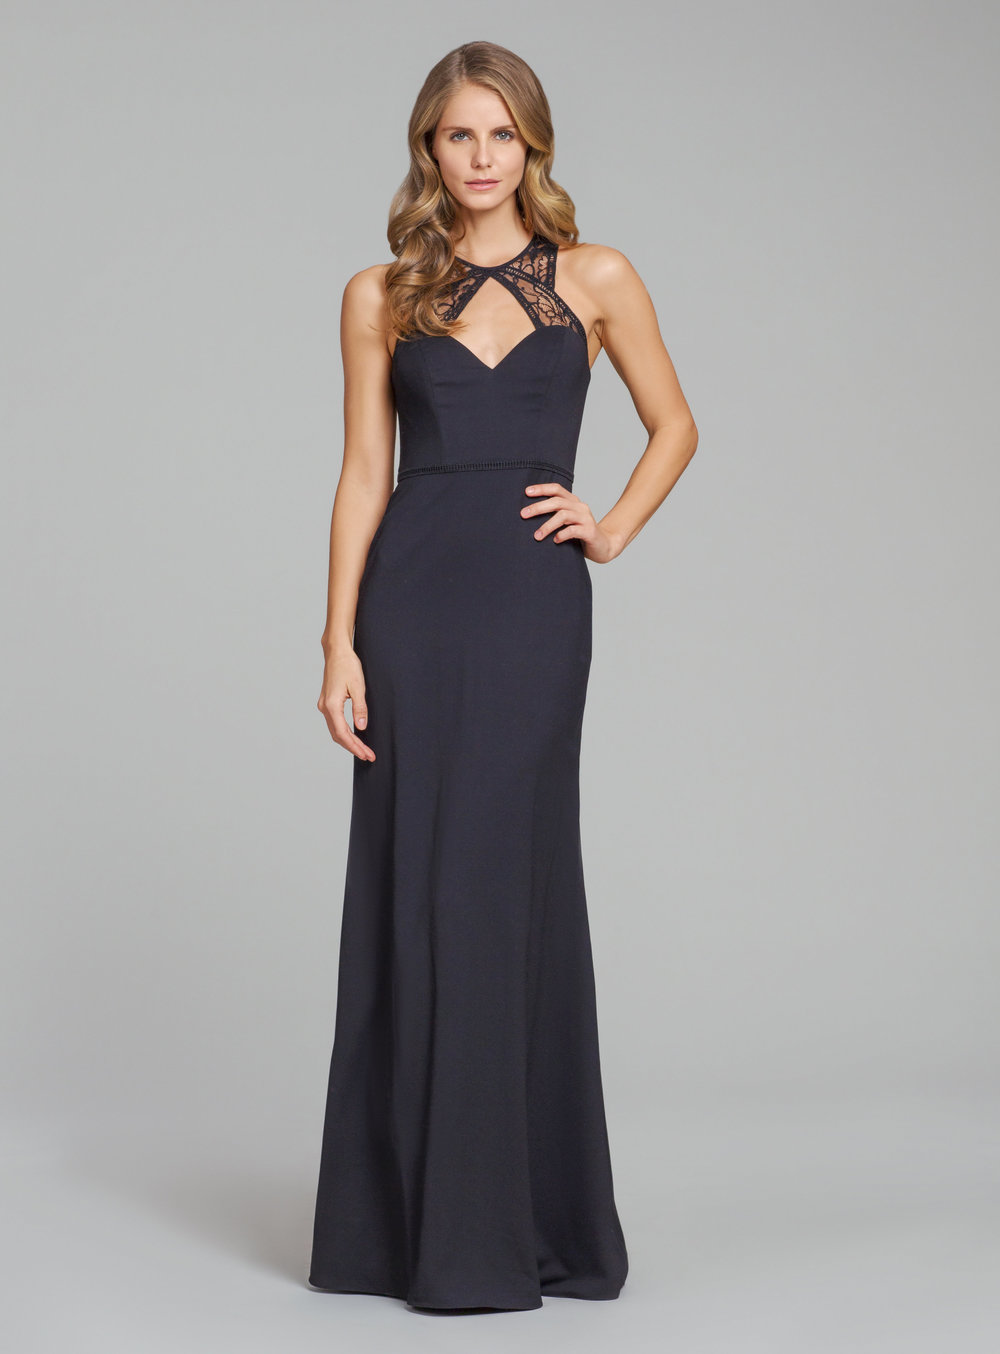 hayley-paige-occasions-bridesmaids-fall-2018-style-5867.jpg